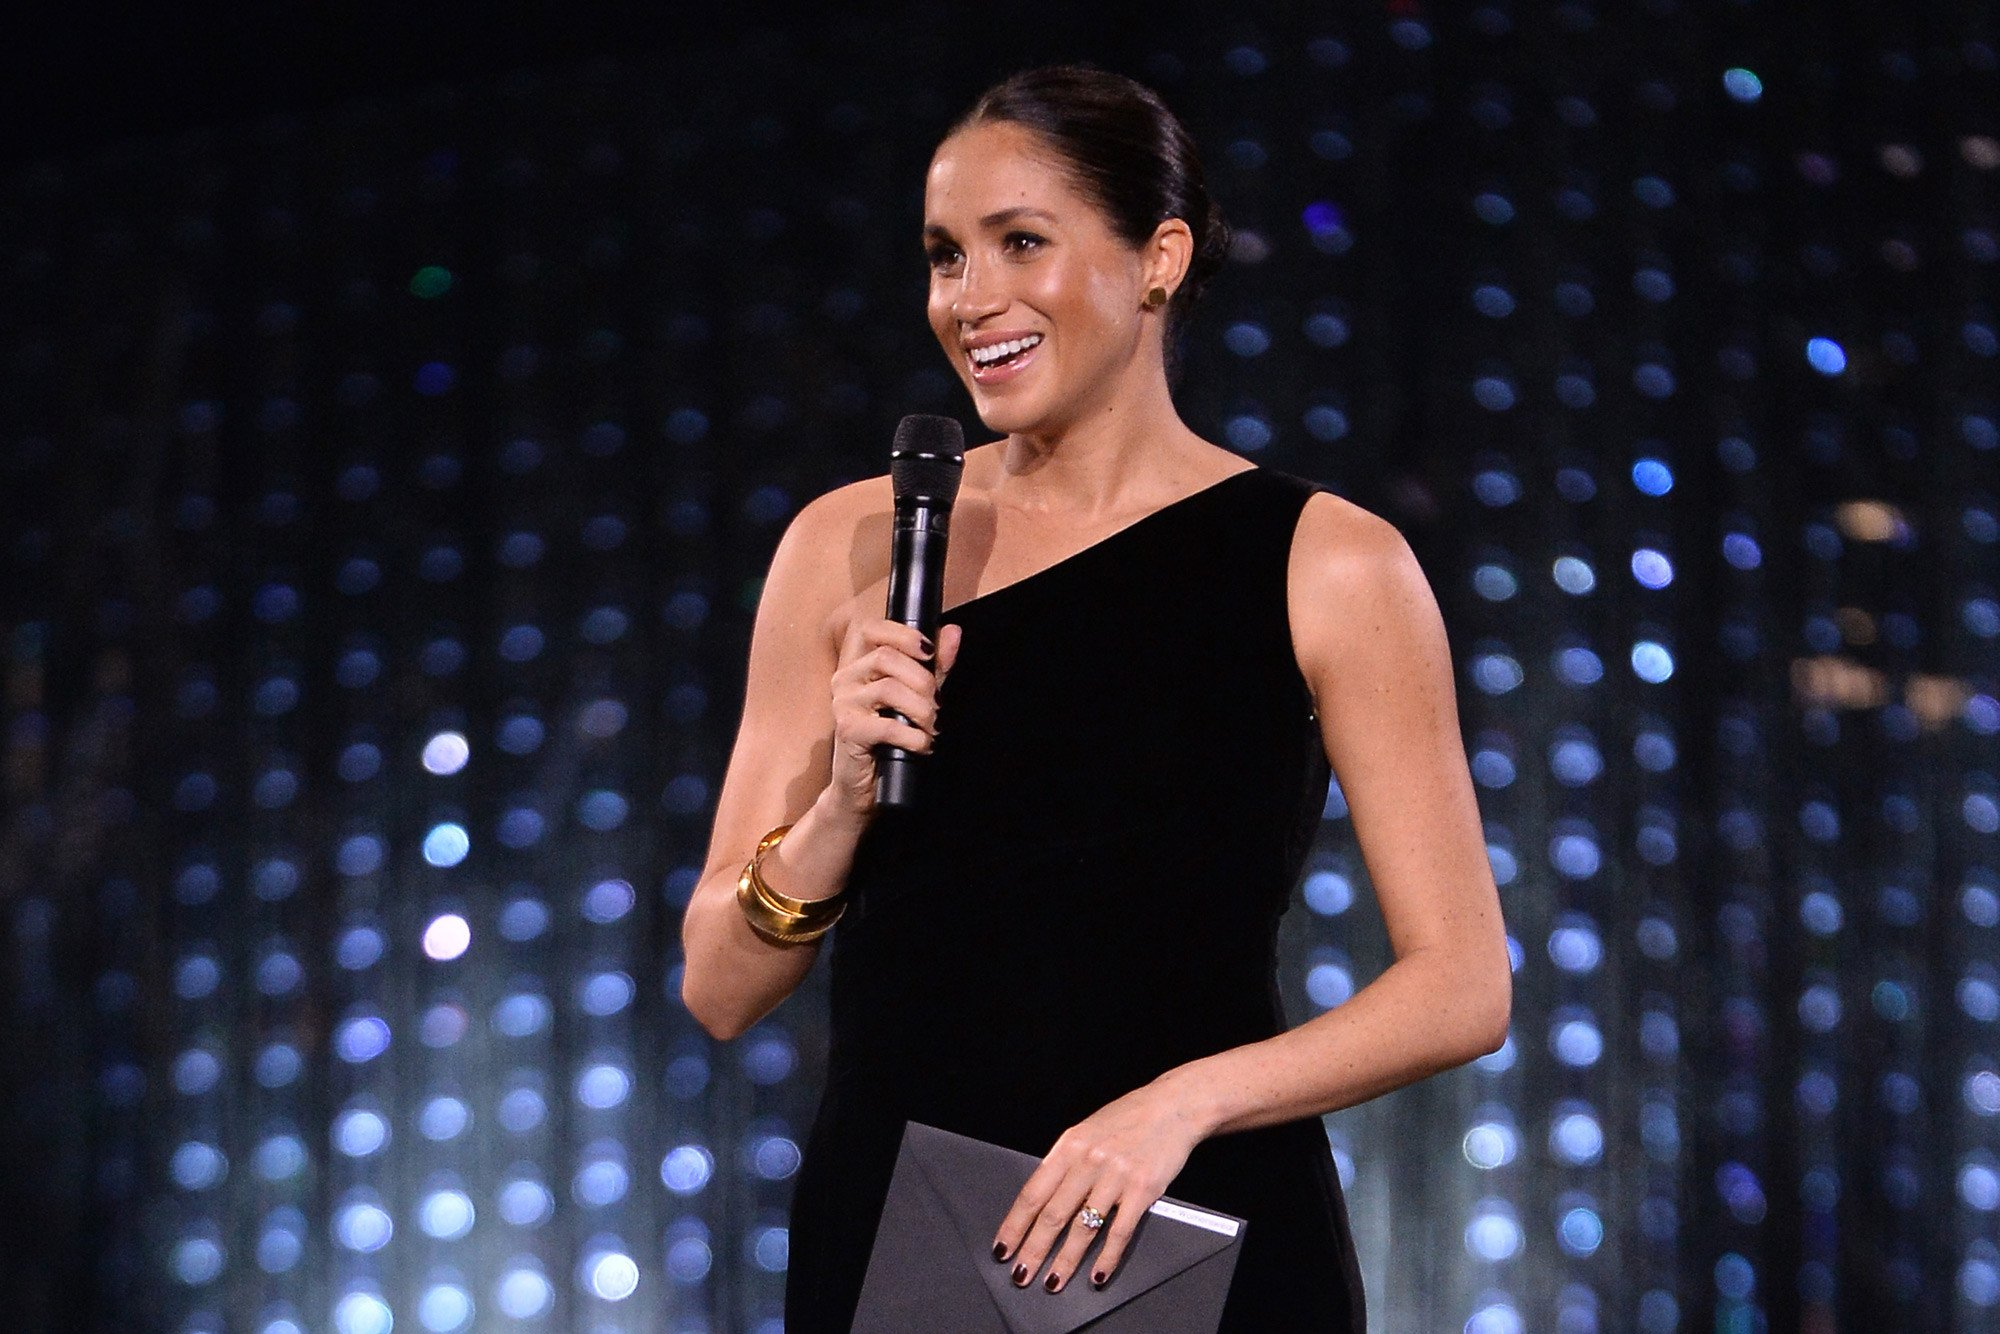 Meghan Markle makes surprise appearance at British Fashion Awards